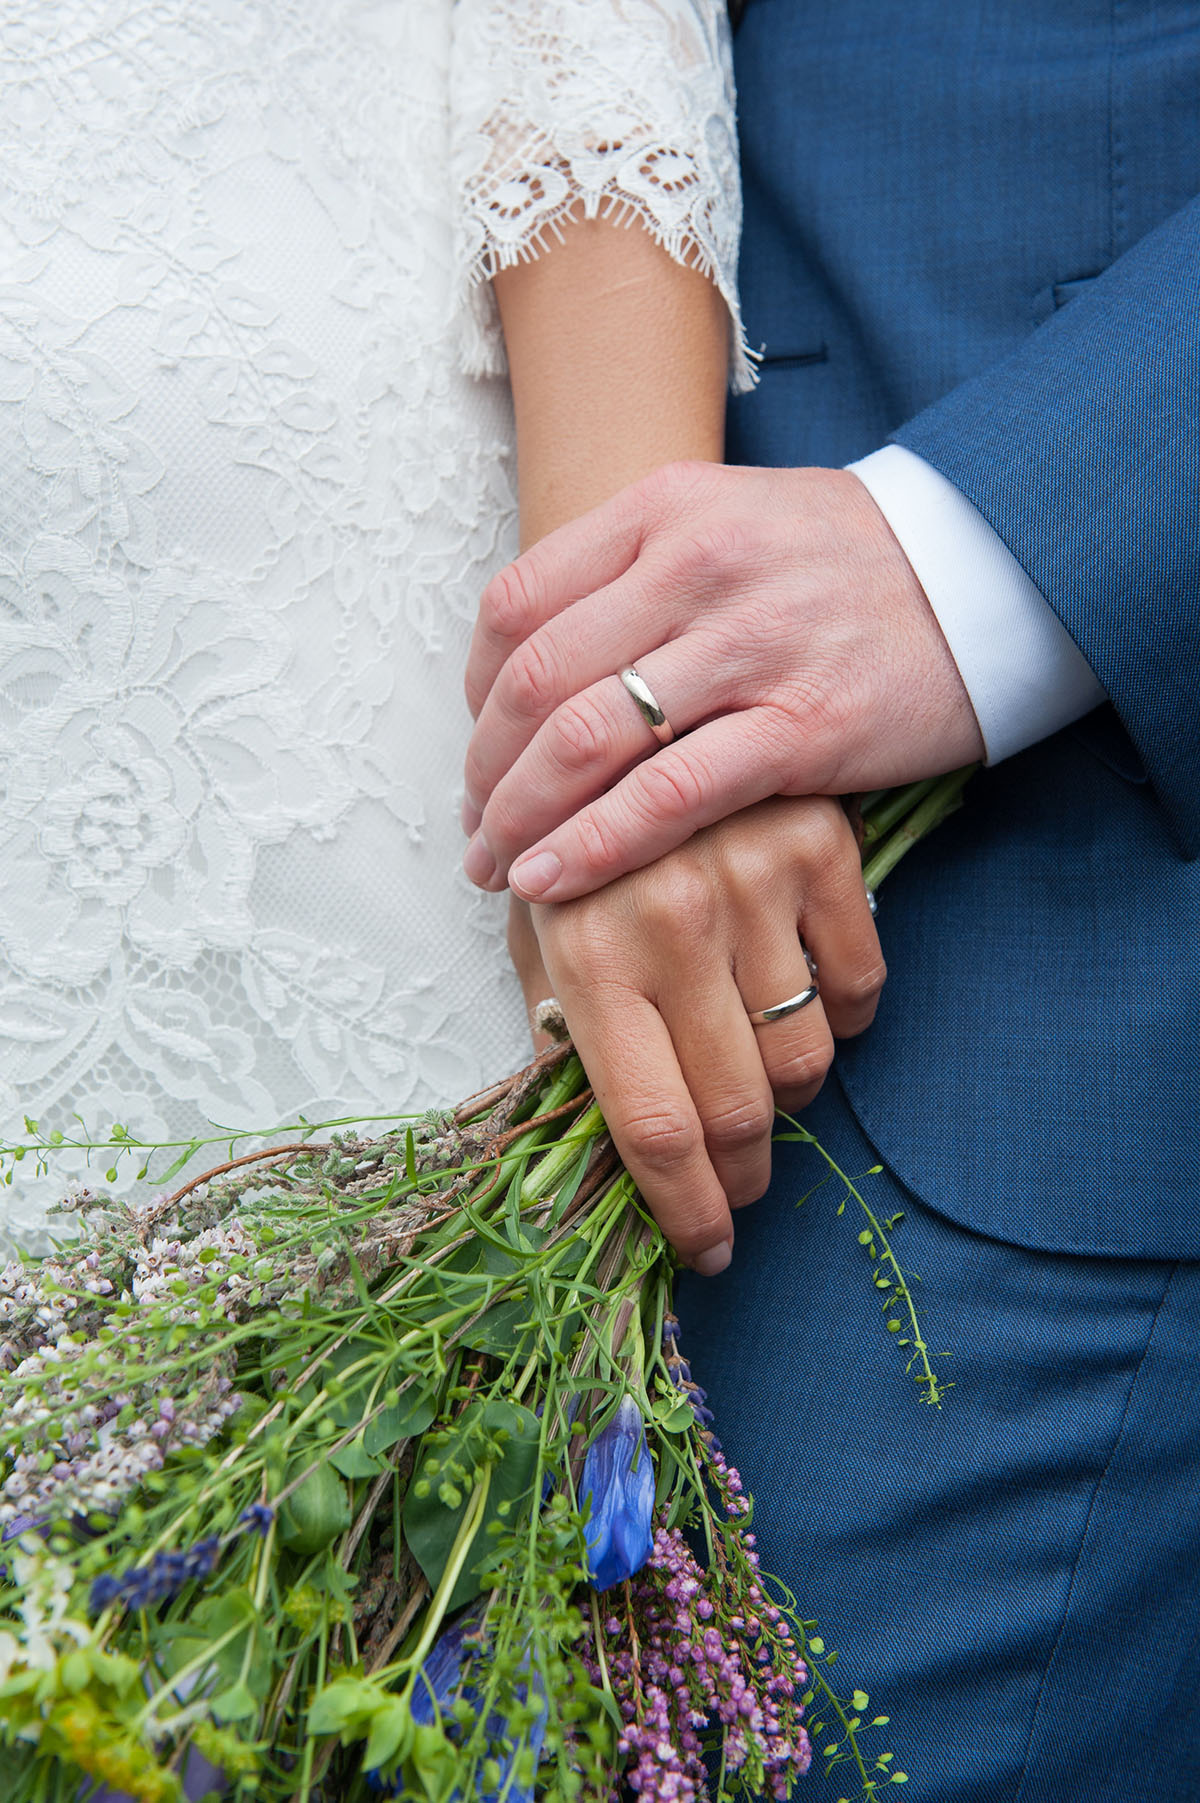 Wedding pictures - detailed image of wedding rings on the hands of a bride and groom, with the bride holding flowers